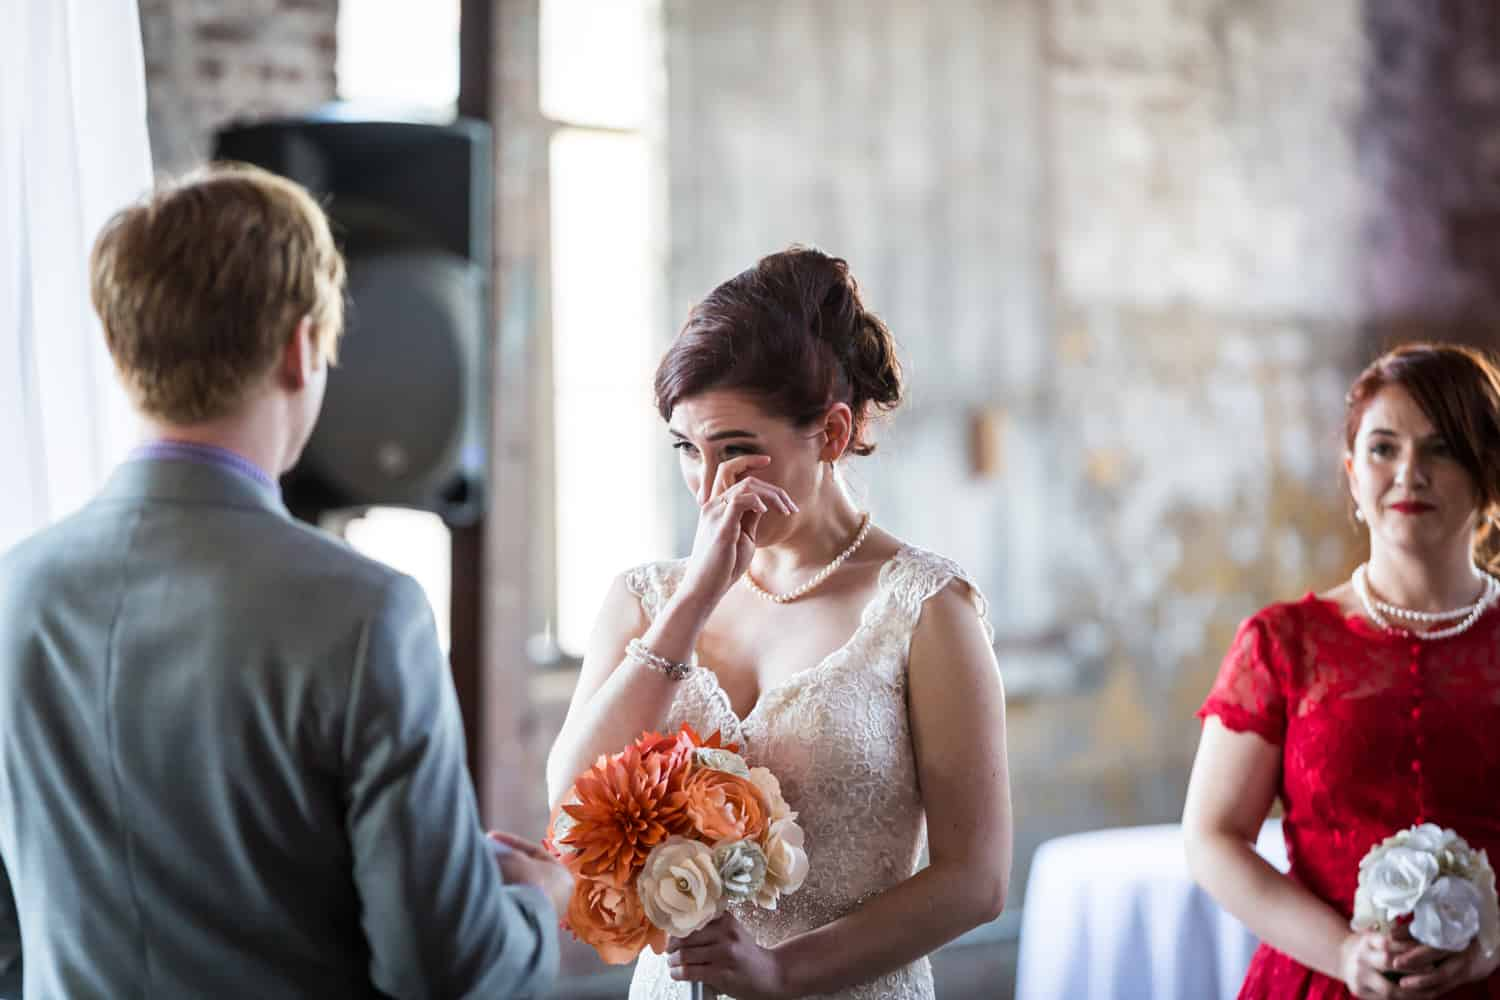 Bride wiping away tear during ceremony at a Greenpoint Loft wedding